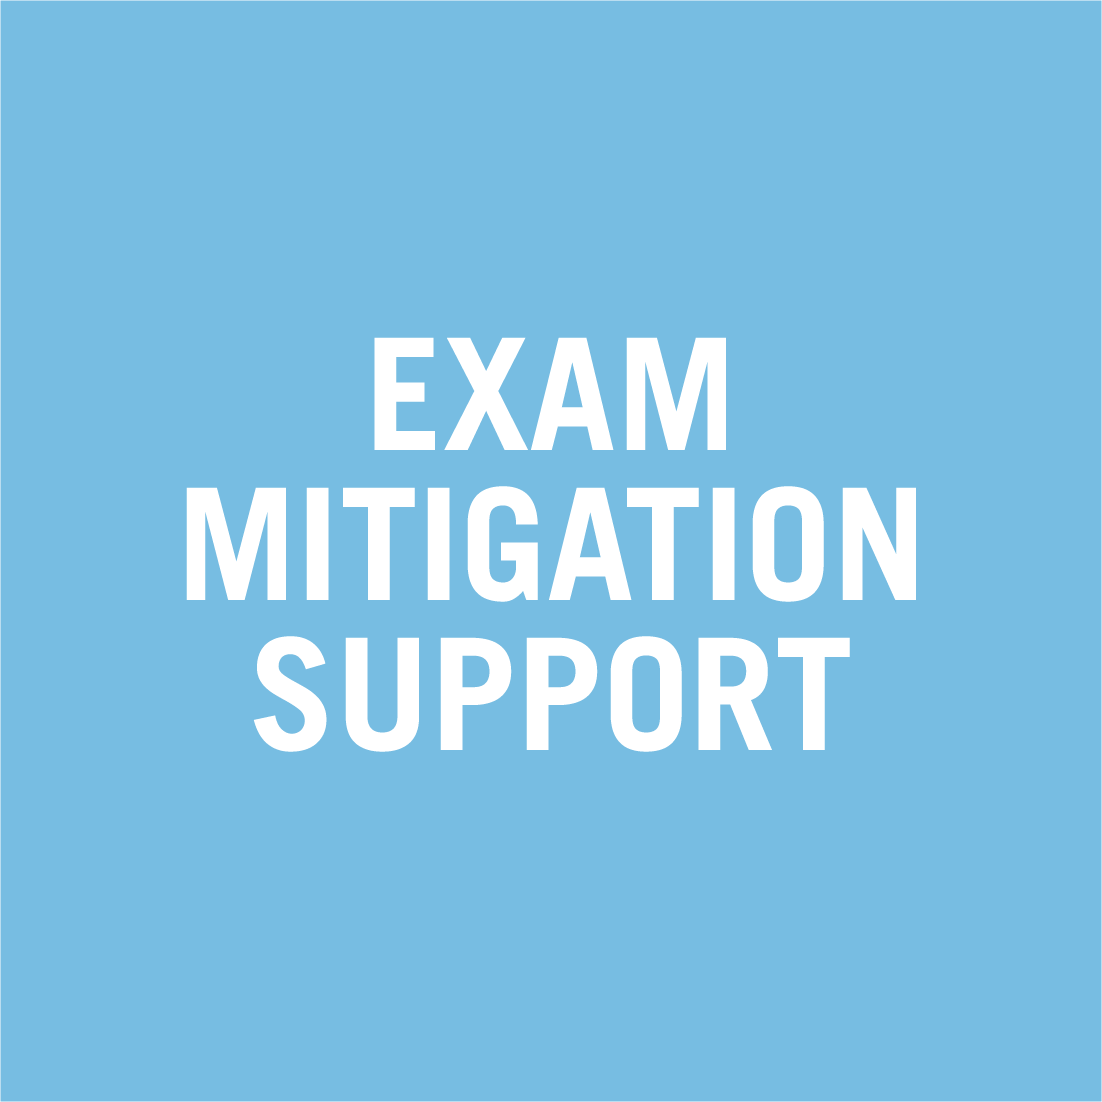 Exam Mitigation